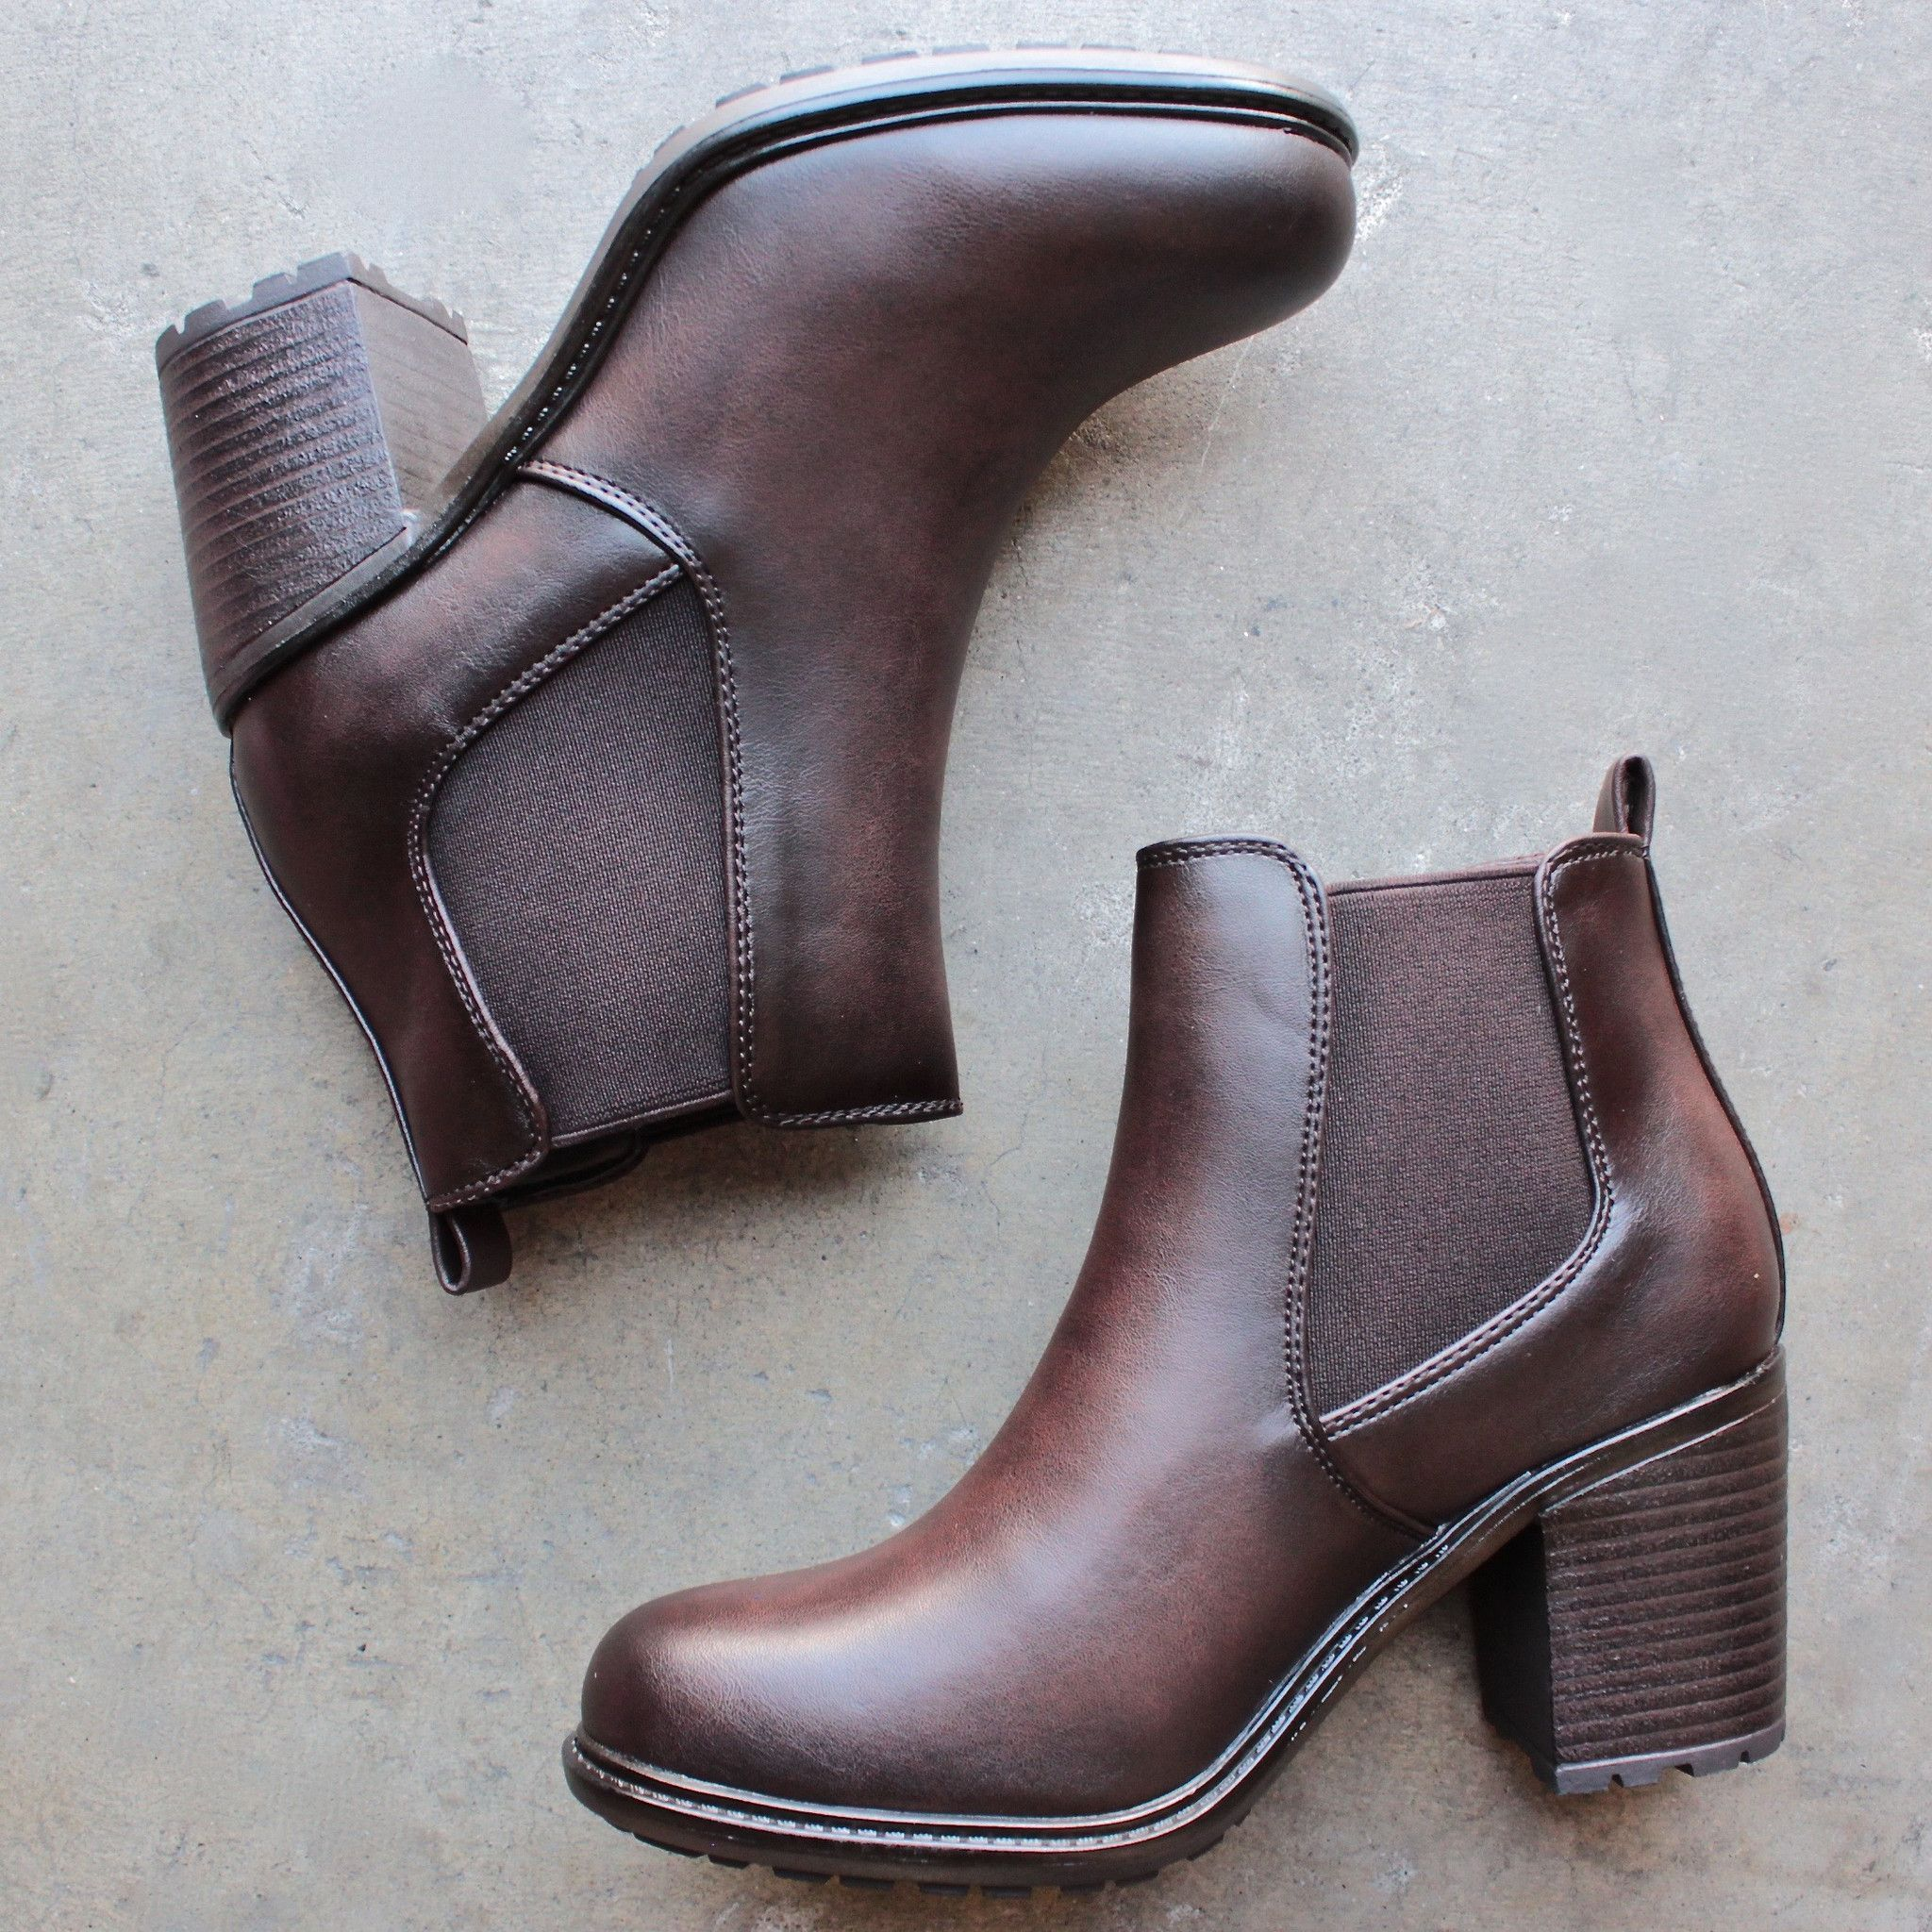 0b259ec6c80f Chunky heel vegan leather chelsea boots - dark brown | { shophearts ...